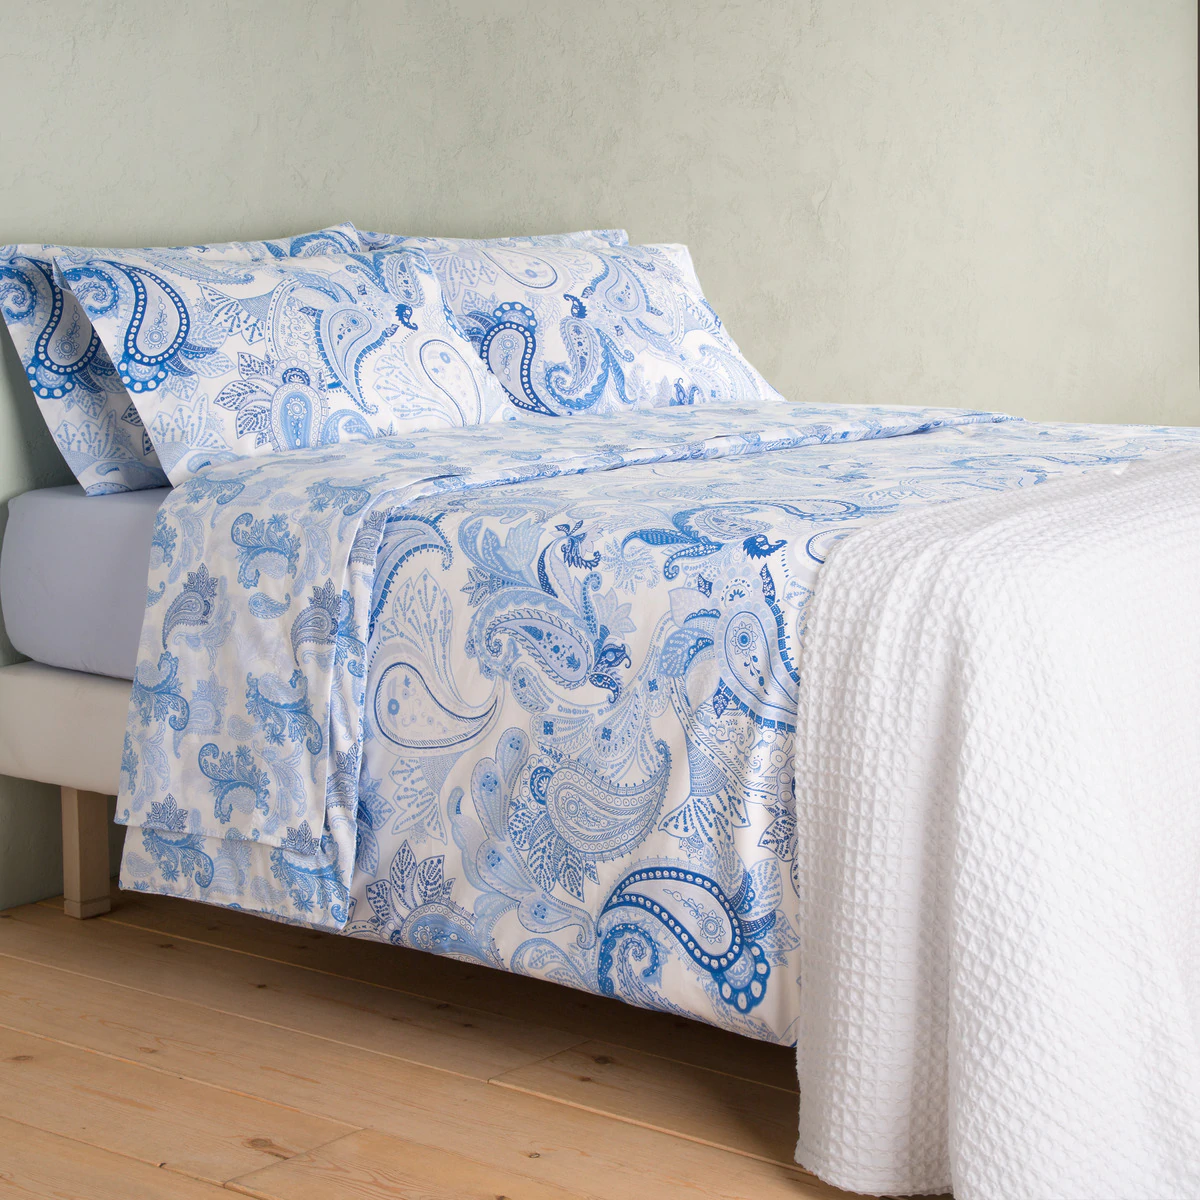 Set of duvet cover with bottom on sale